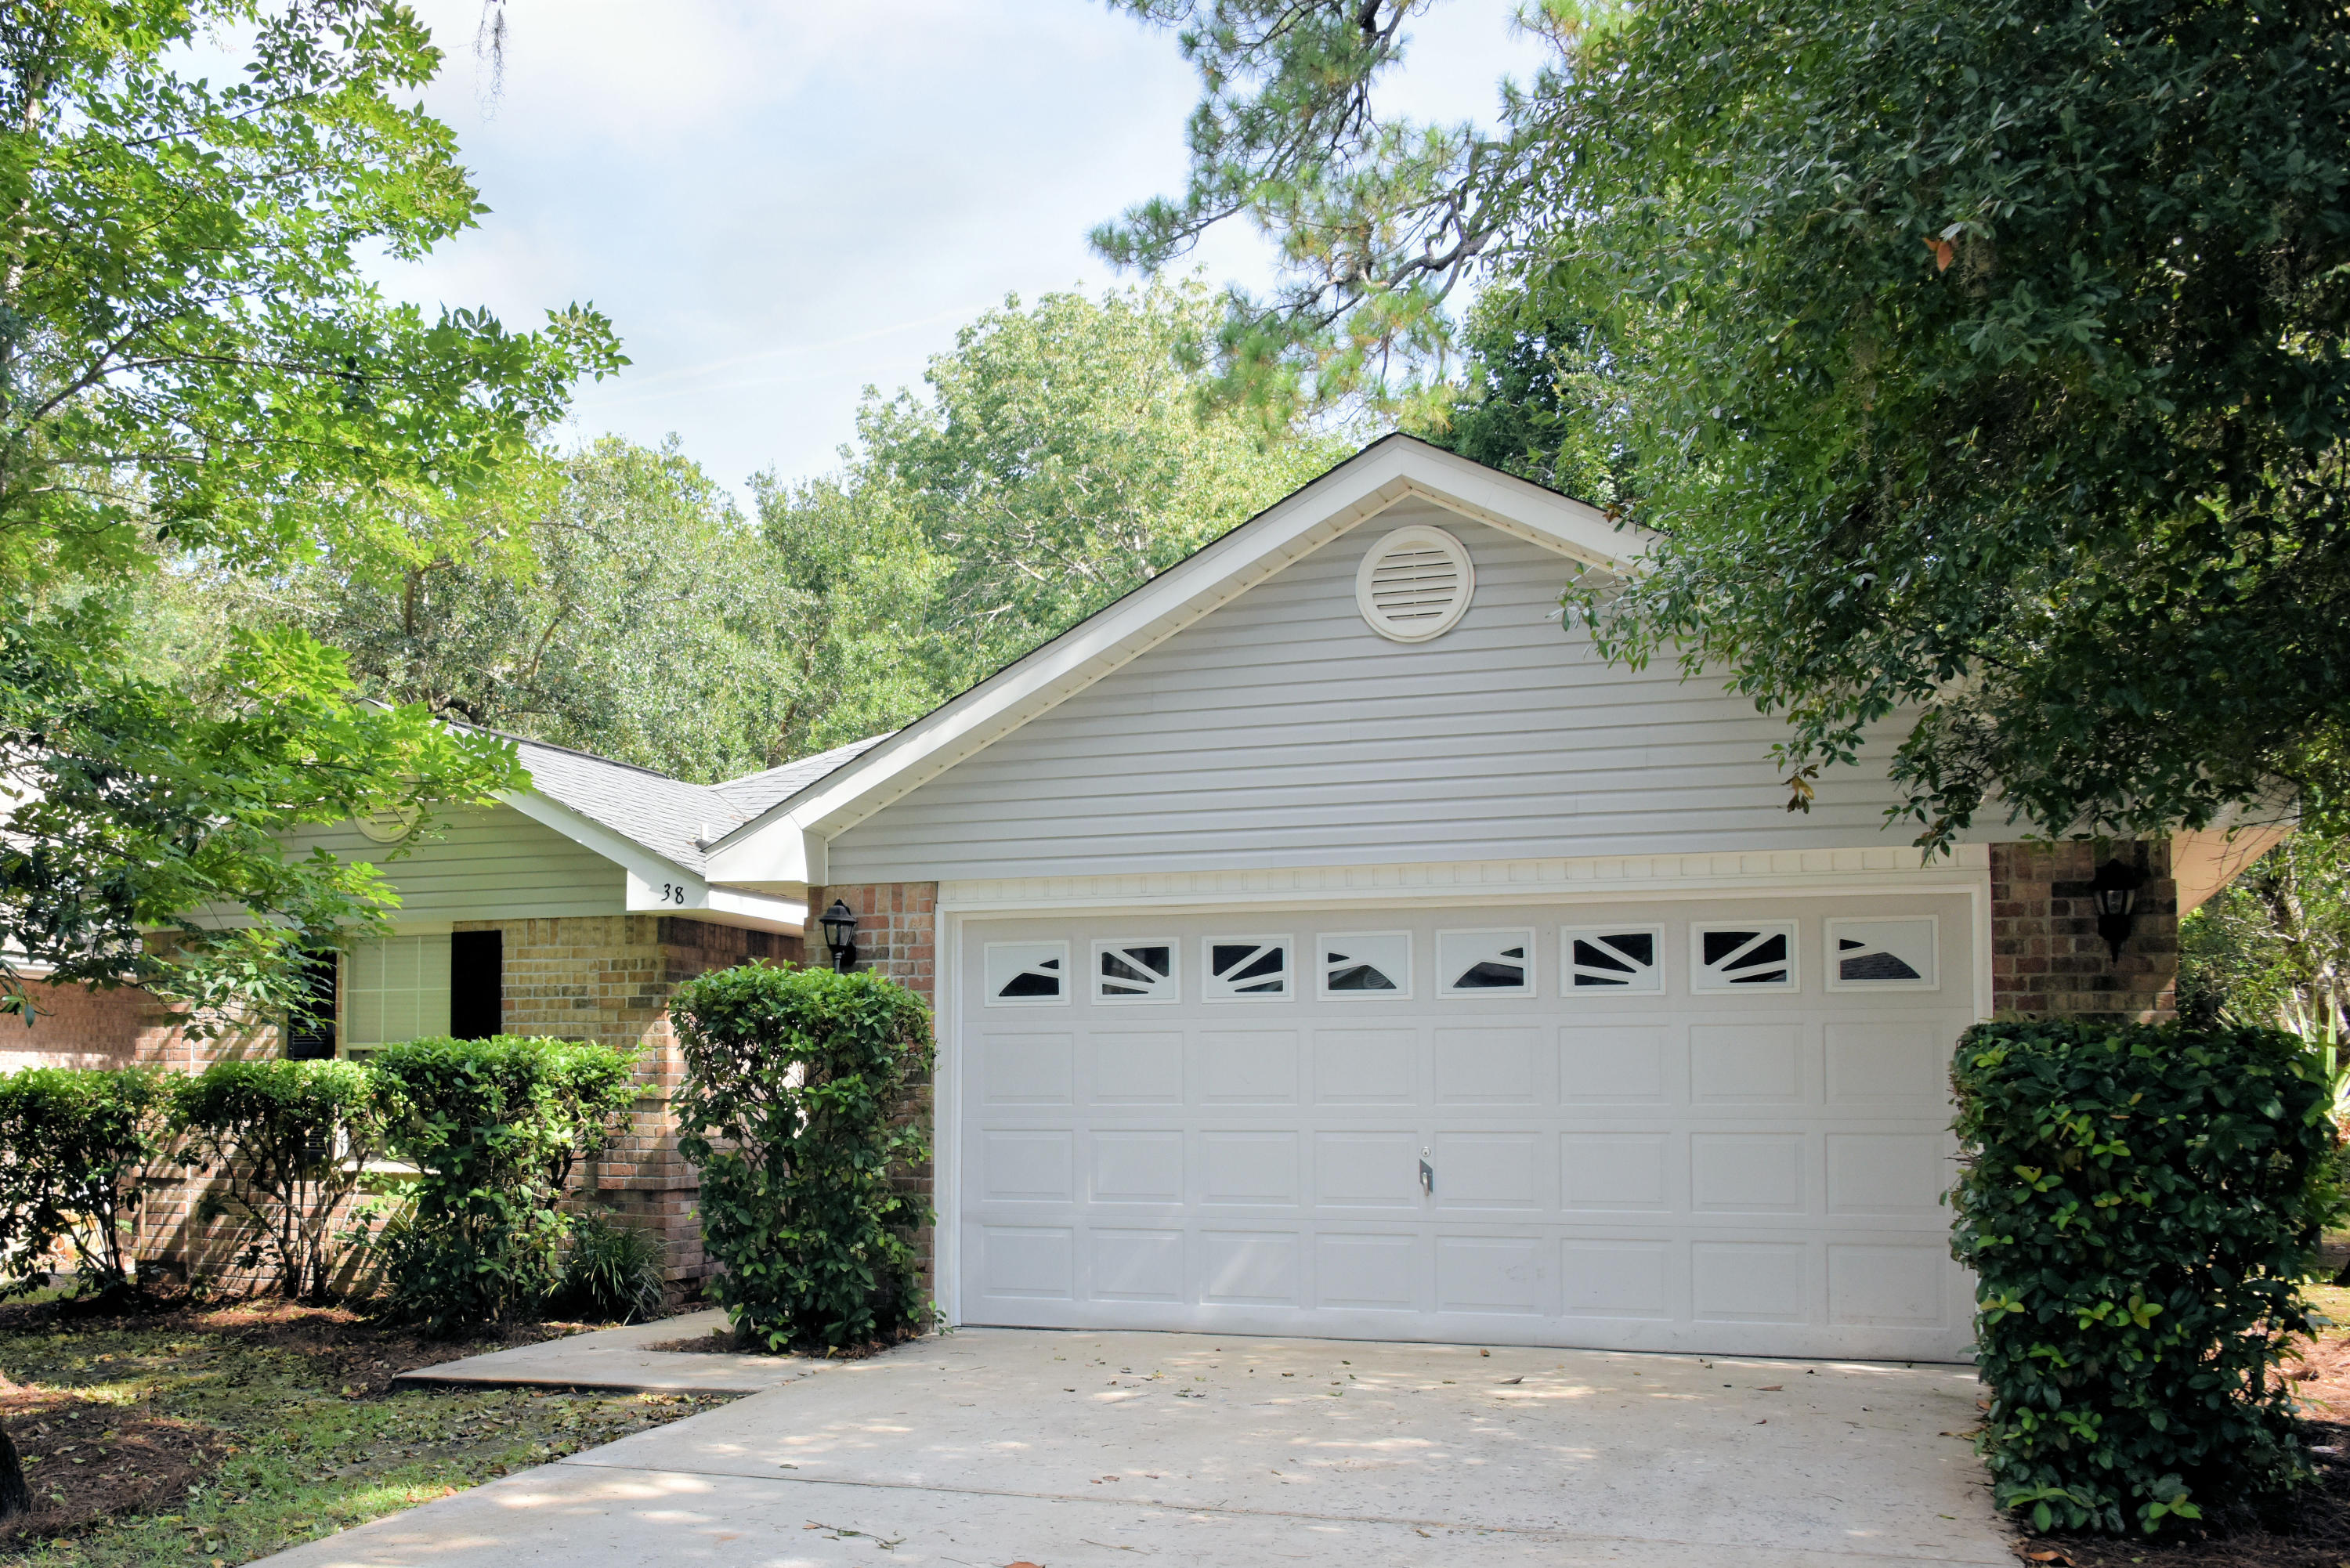 Located near Sacred Heart Hospital, Grand Boulevard Town Center, Carmike Cinema 10, Restaurants, Silver Sands Outlets and the White Sand Beaches of South Walton. This Low Maintenance Exterior, Open/ Split Bedroom Floor Plan with Vaulted Ceilings is Ideal for Entertaining. Freshly painted to include ceilings and new carpet makes this move in ready.